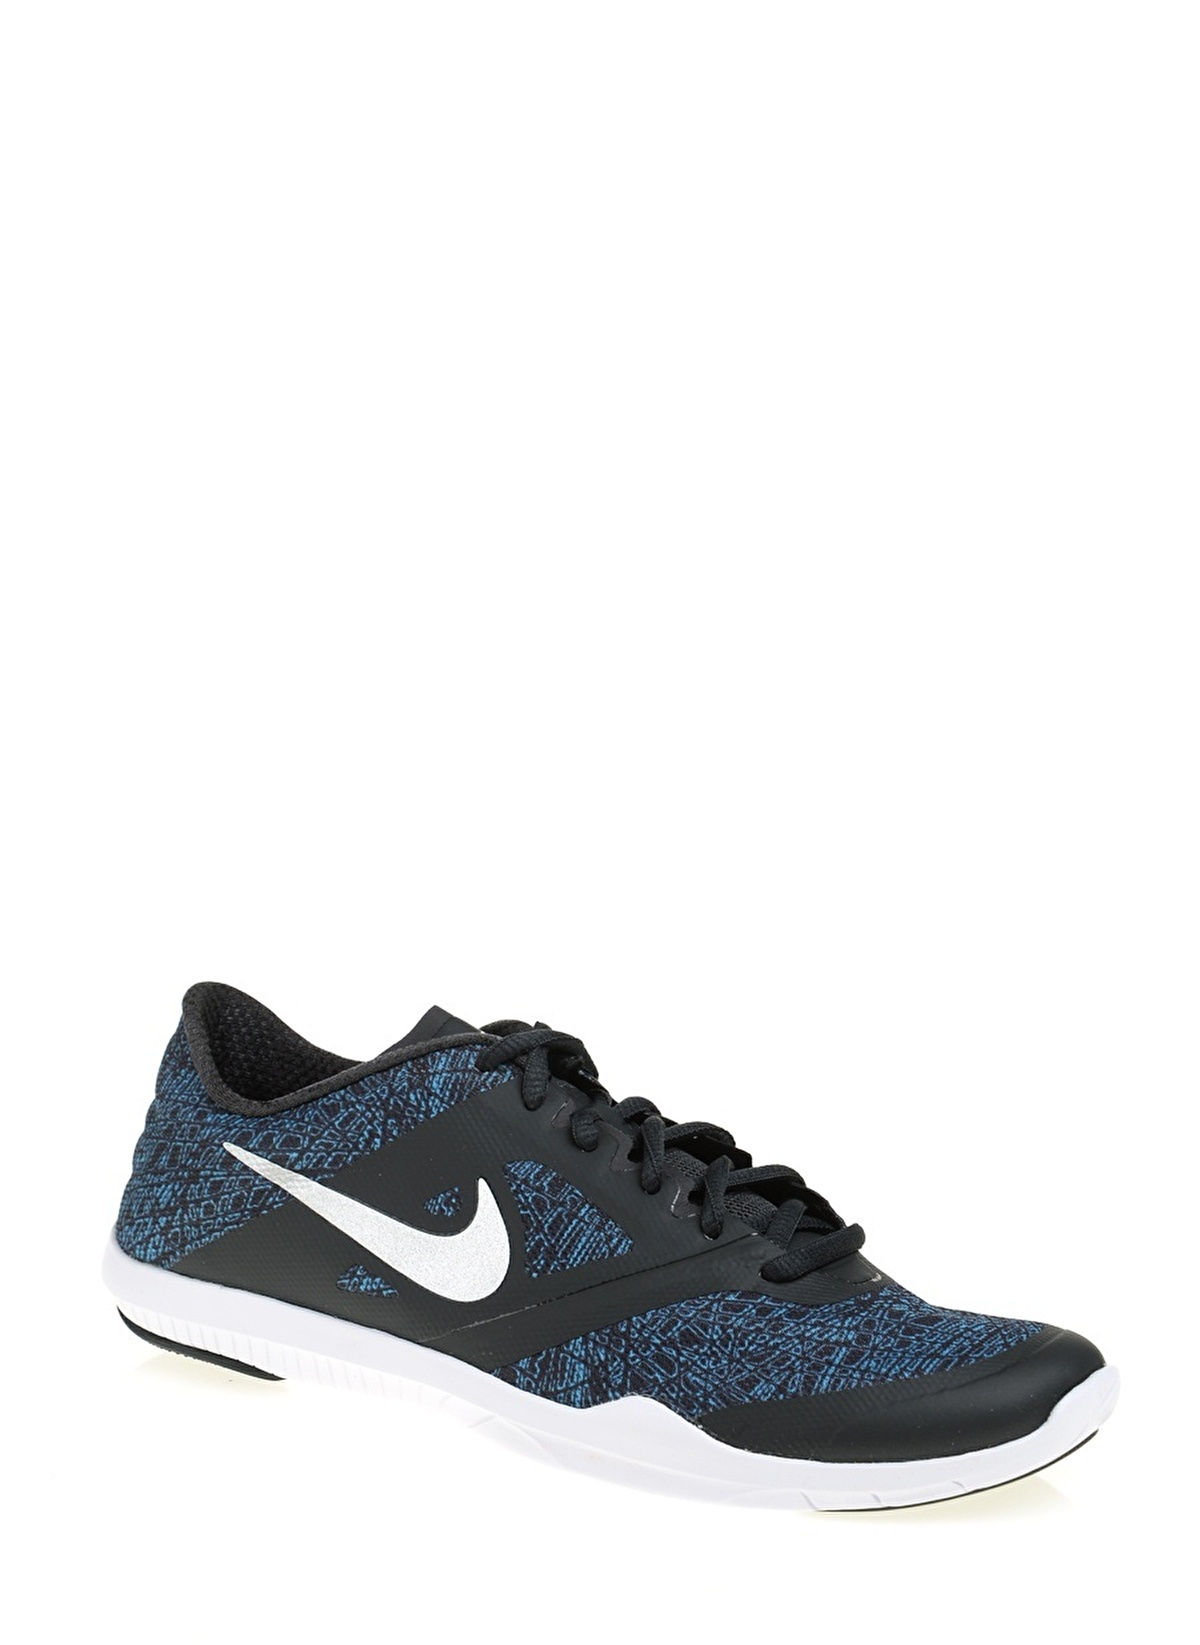 20e68b7472a09b Cheap Nike Air Uk Paypal